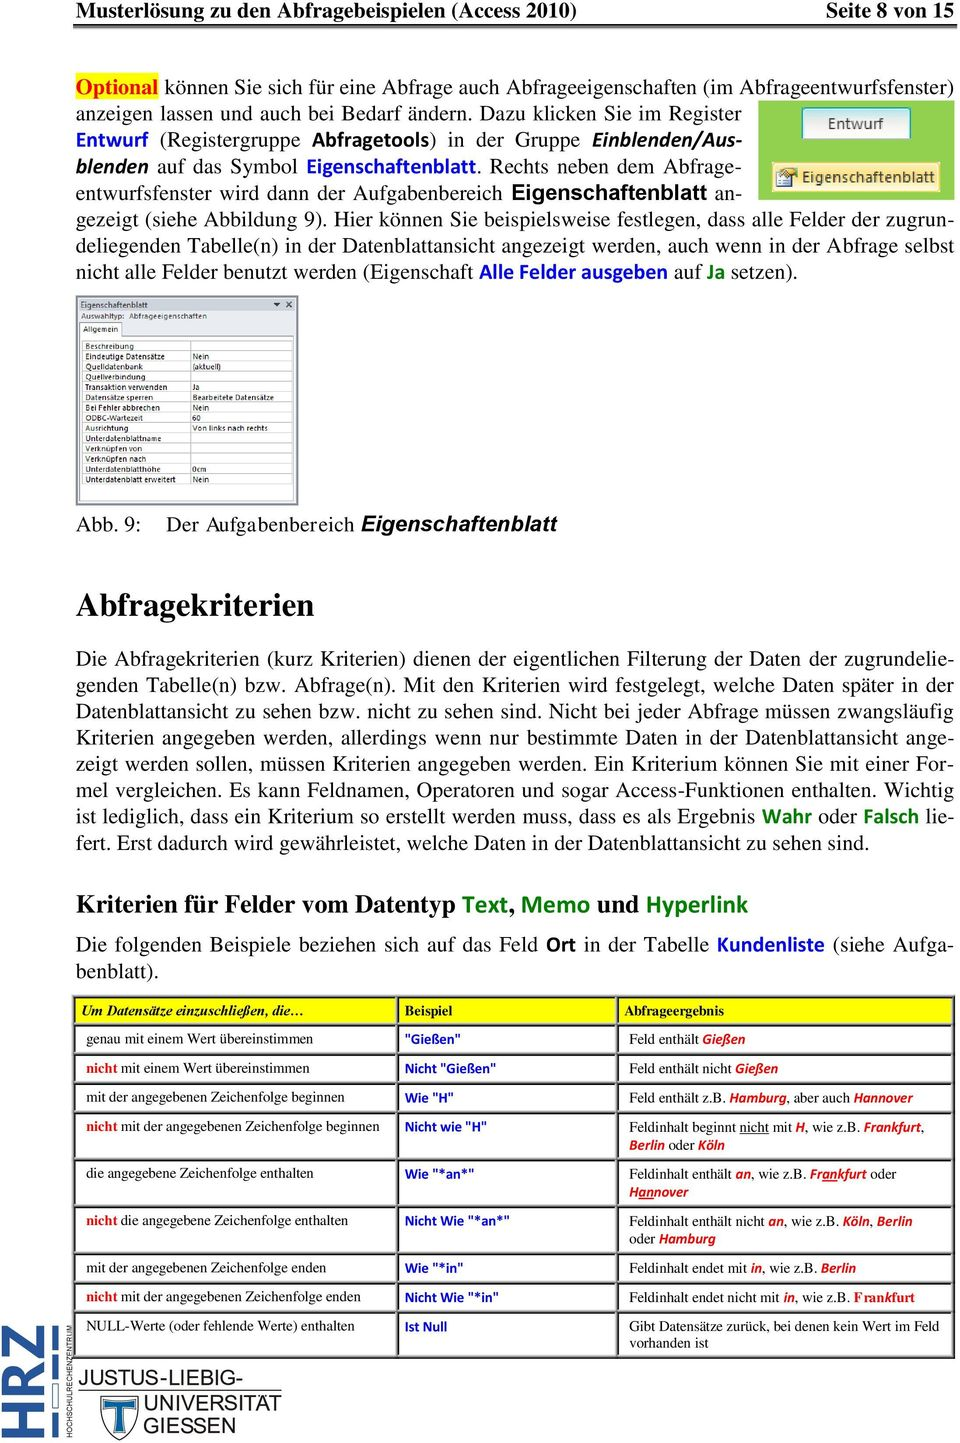 Microsoft Access 2010 Abfragen (inkl. Musterlösung) - PDF